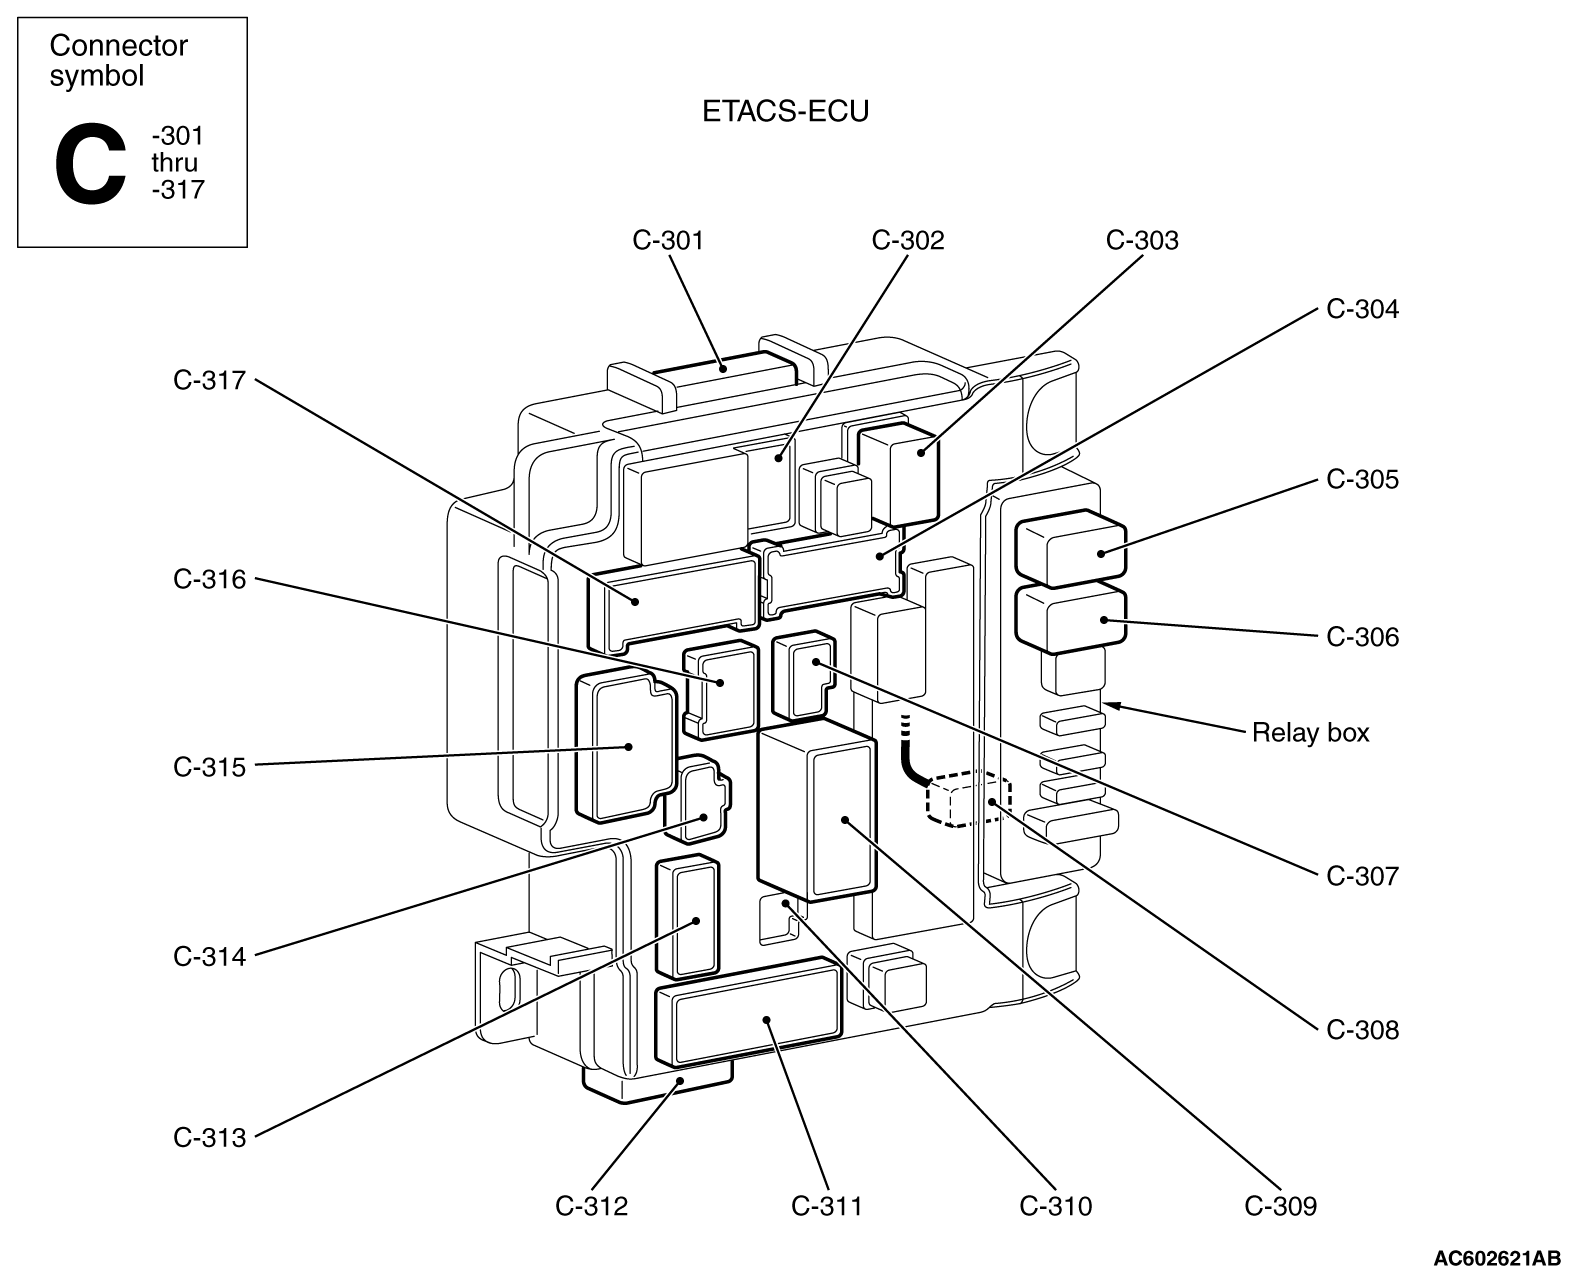 2013 Nissan Sentra Fuse Box Location : 36 Wiring Diagram